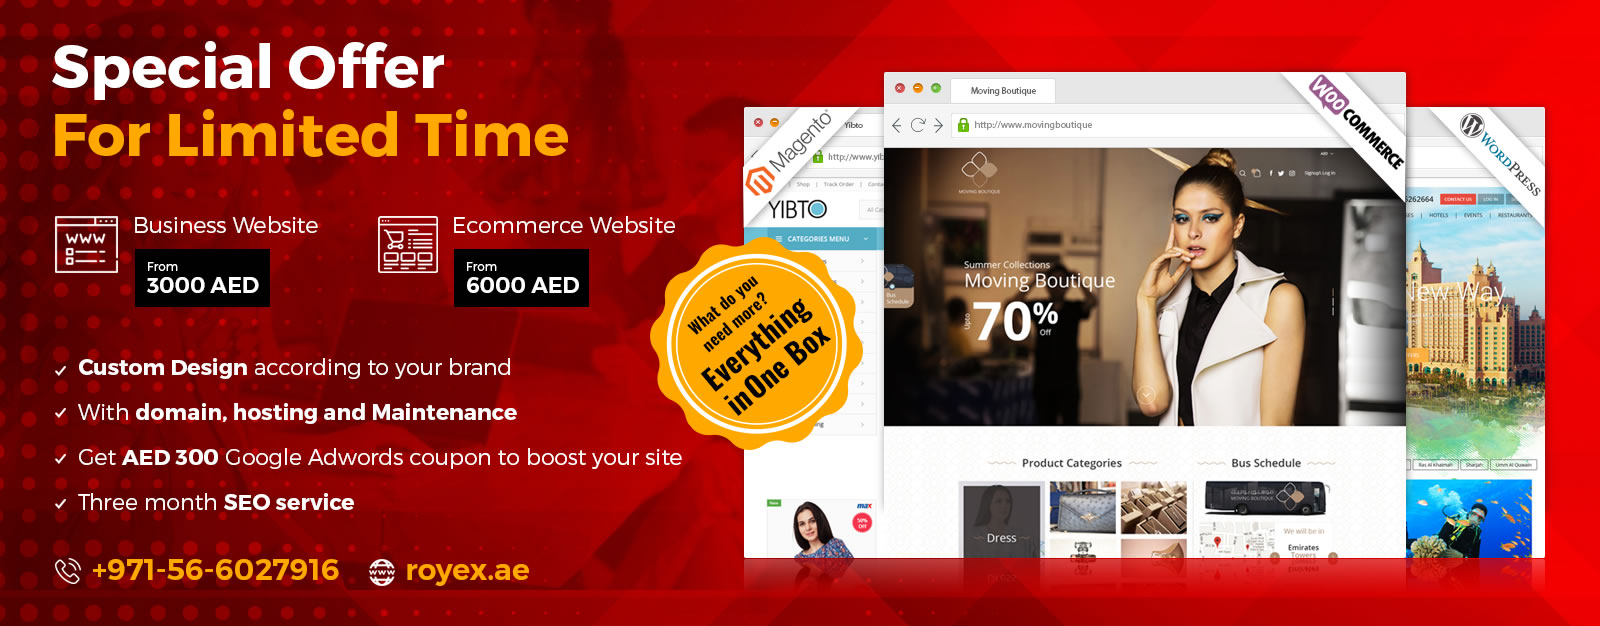 Special Website & Ecommerce Design Offer